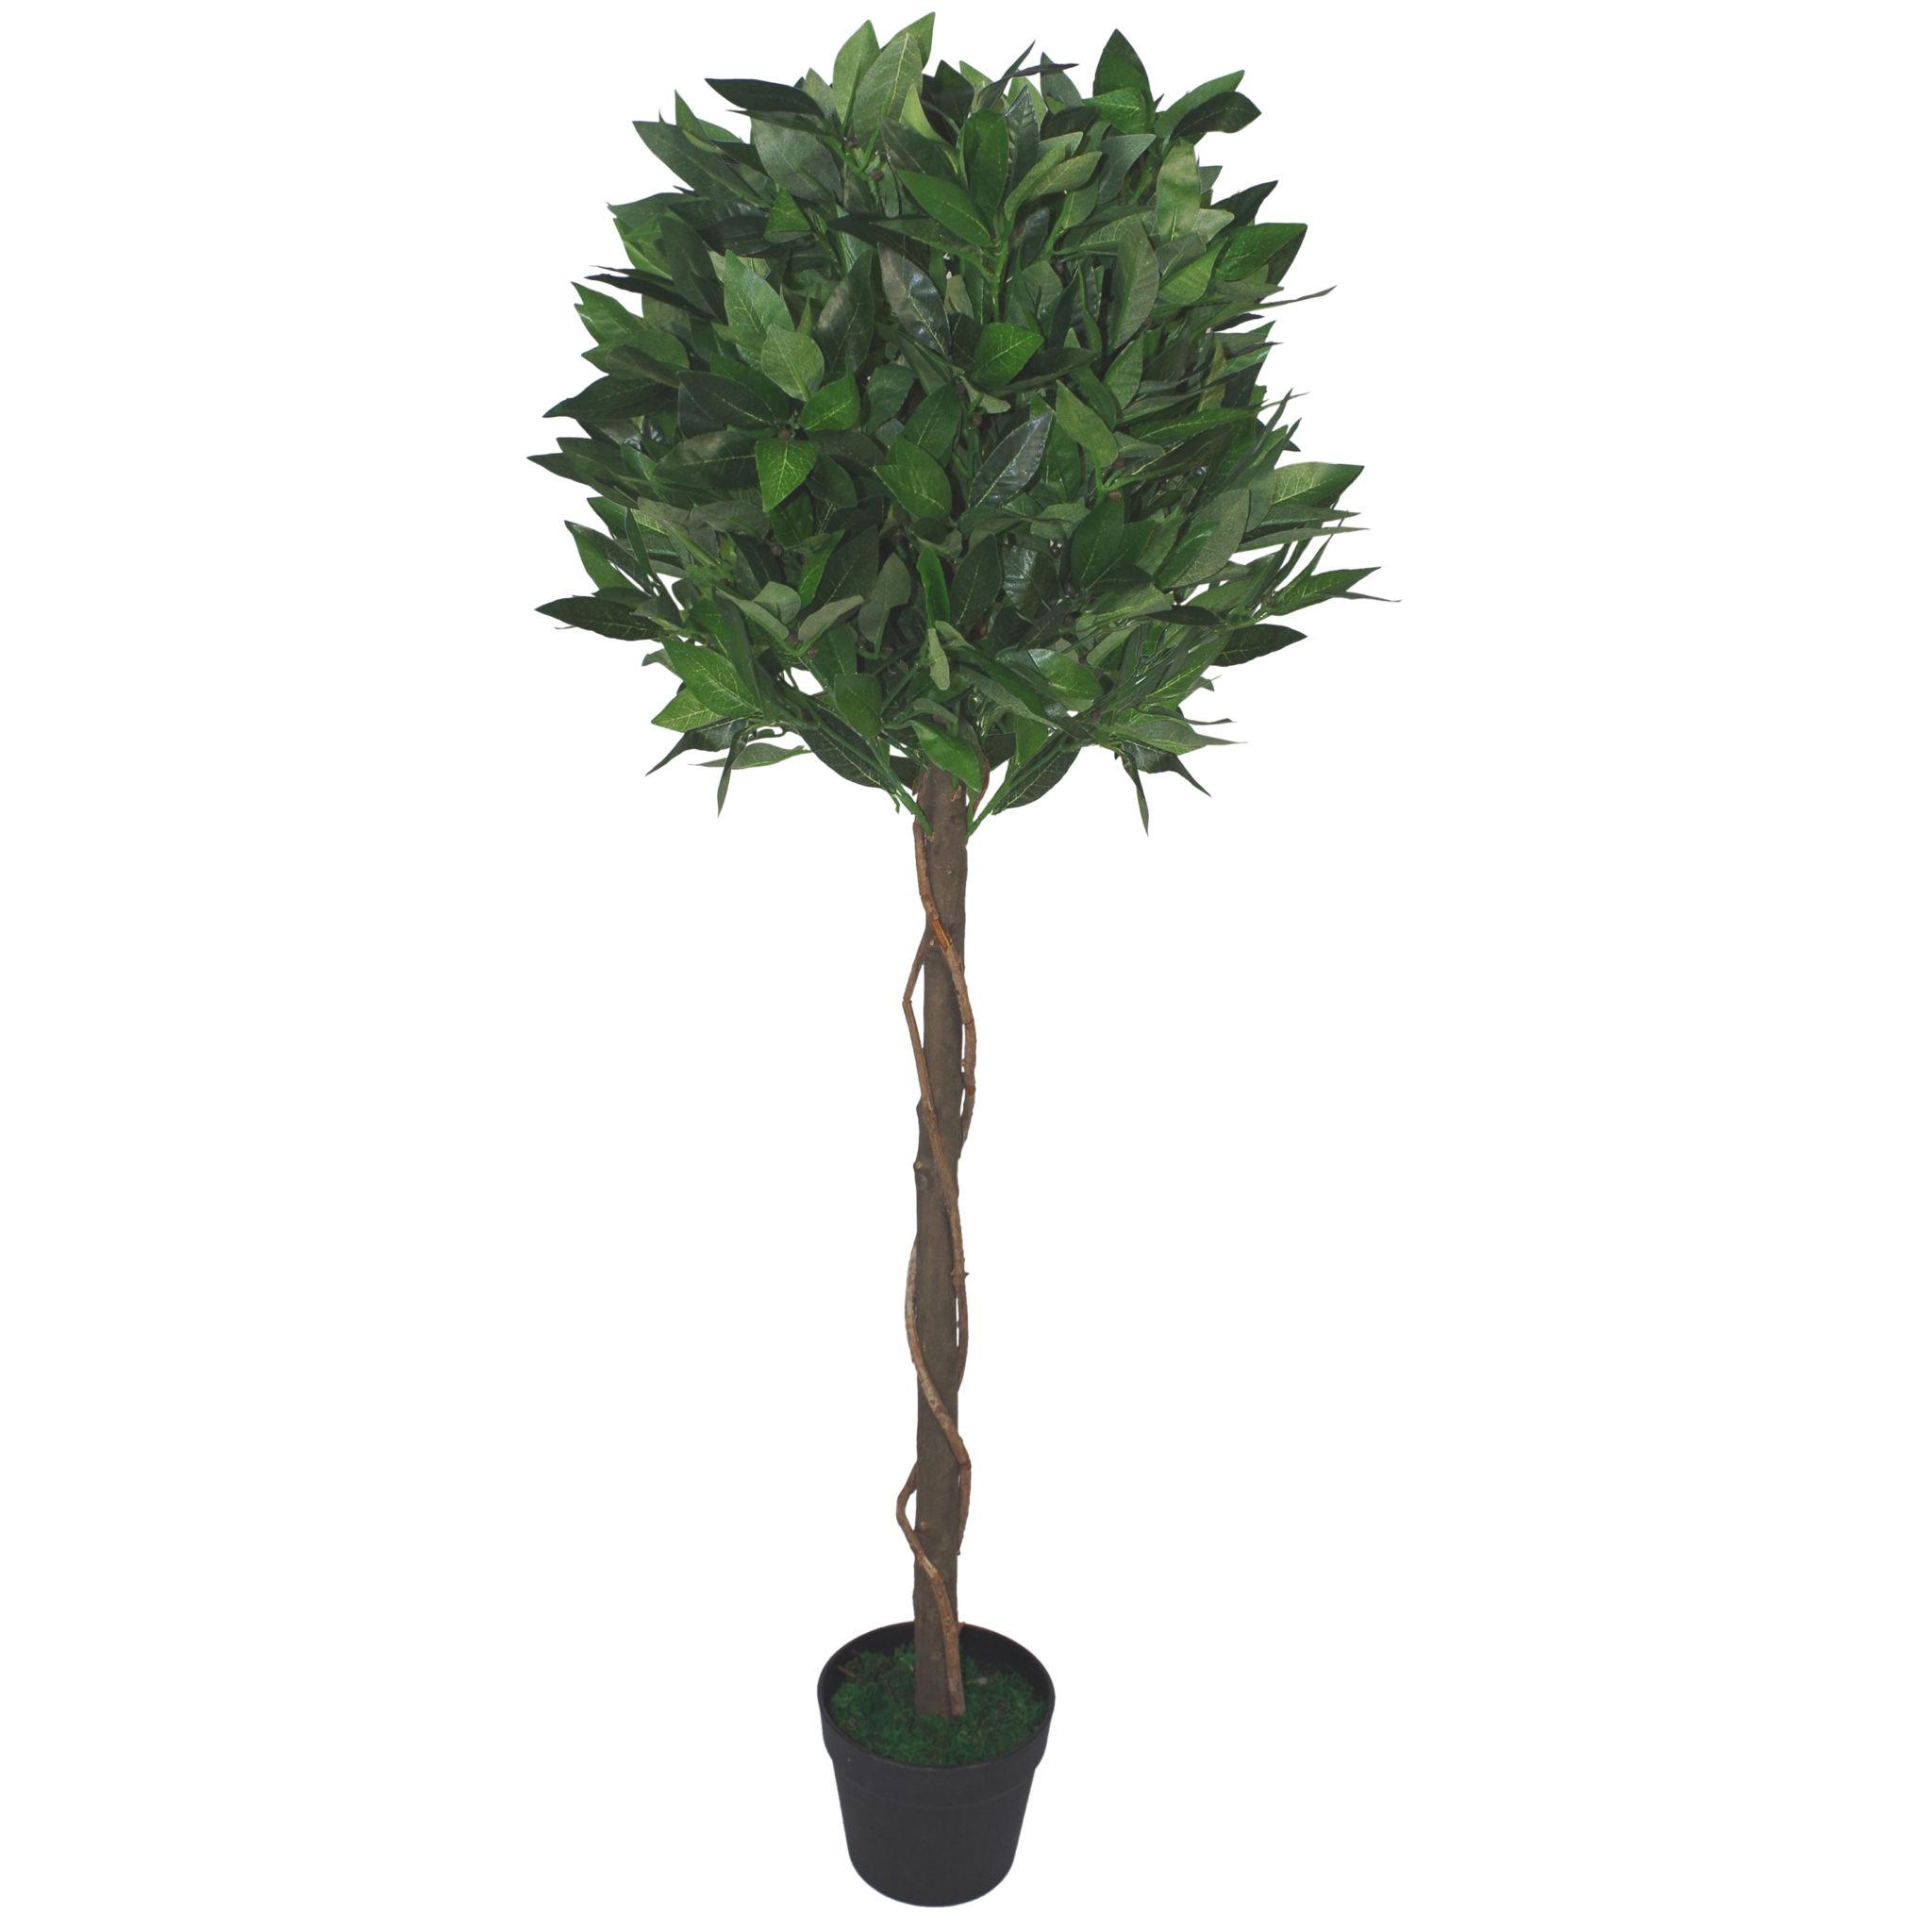 120cm 4ft Artificial Topiary Bay Laurel Tree Ball Style